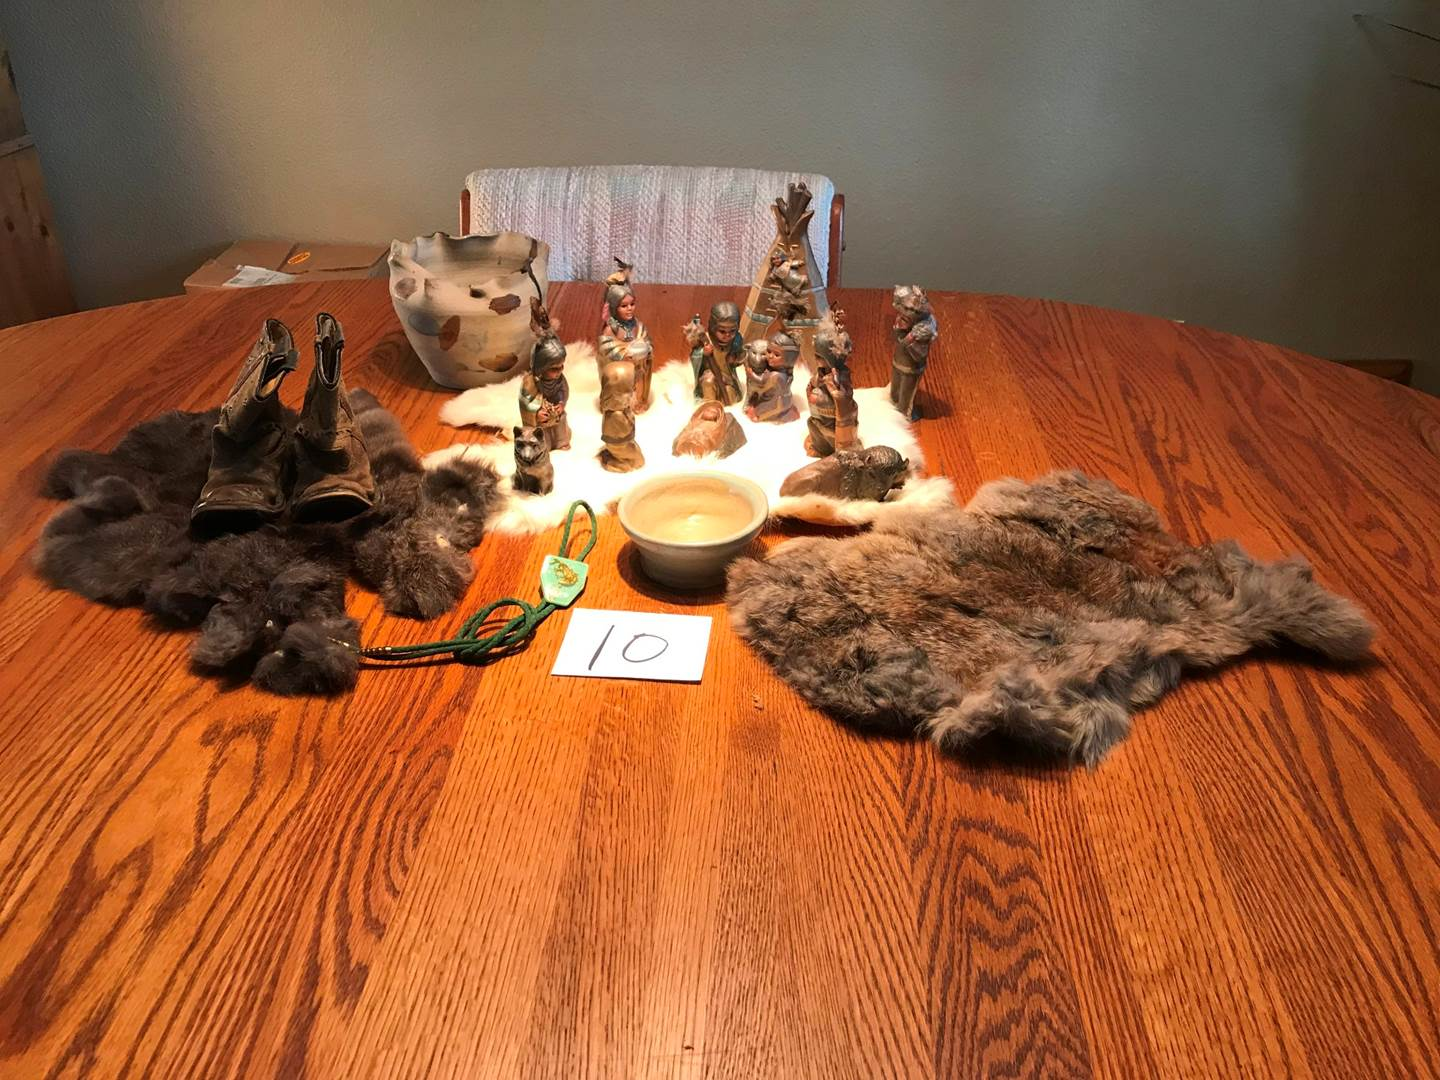 Lot # 10 - Cool Native American Nativity Set, Vintage Children's Cowboy Boots, Rabbit Furs, Pottery & More. (main image)